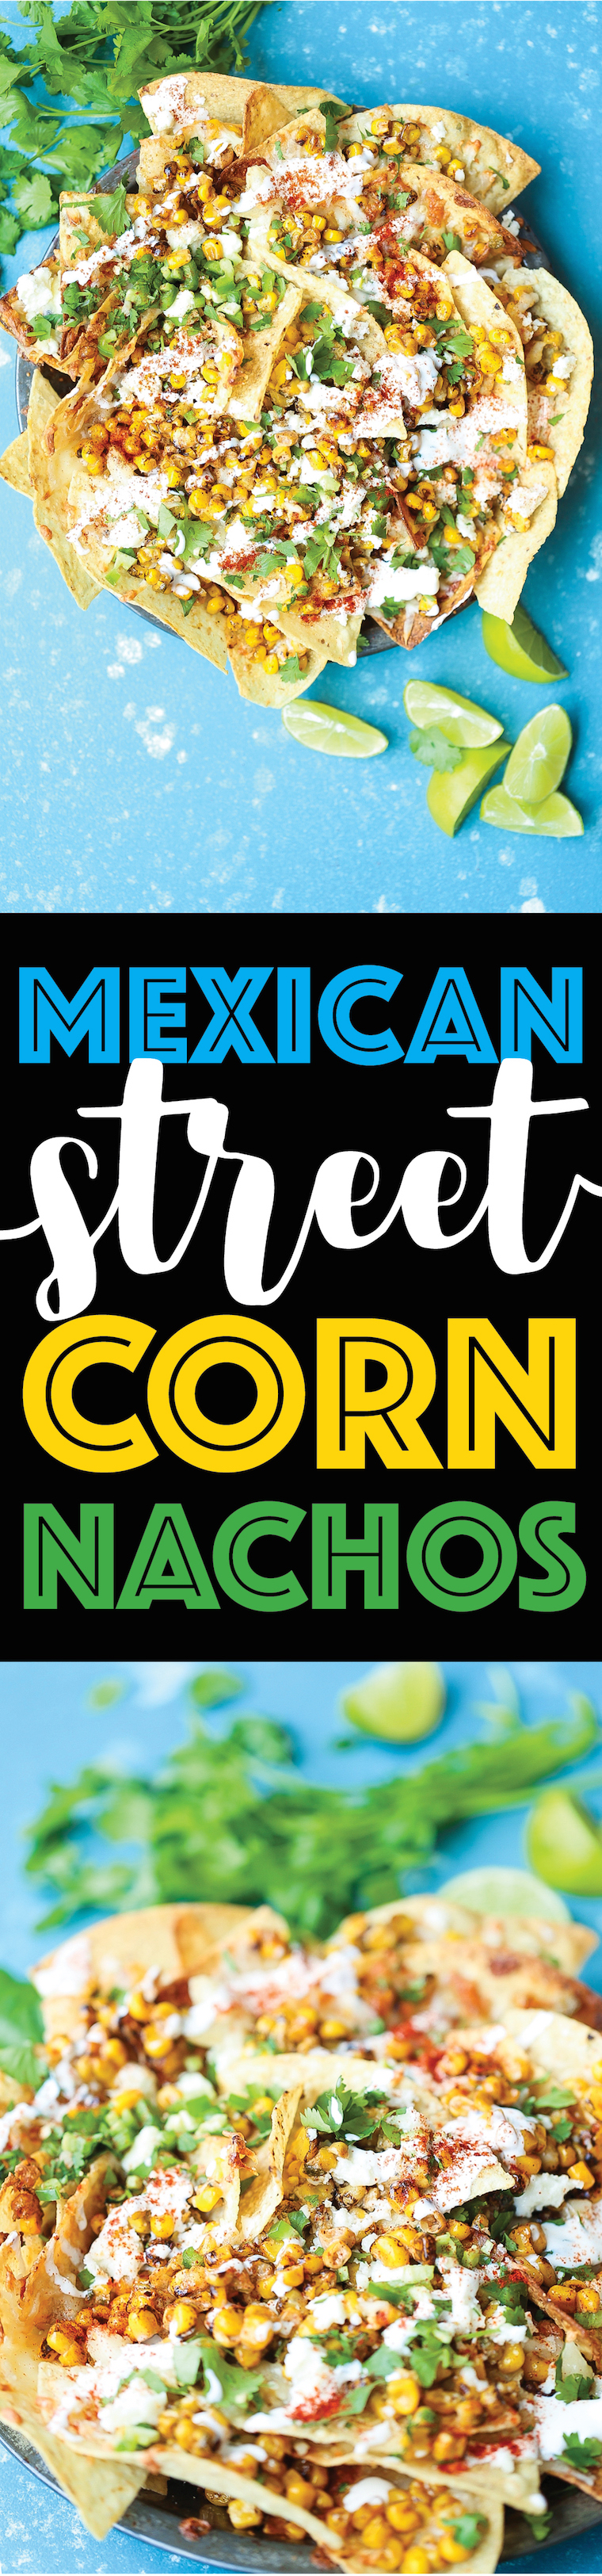 Mexican Street Corn Nachos - Everyone's favorite Mexican elote is made into the BEST nachos! Loaded with roasted corn, lime, chili powder and Mexican crema!